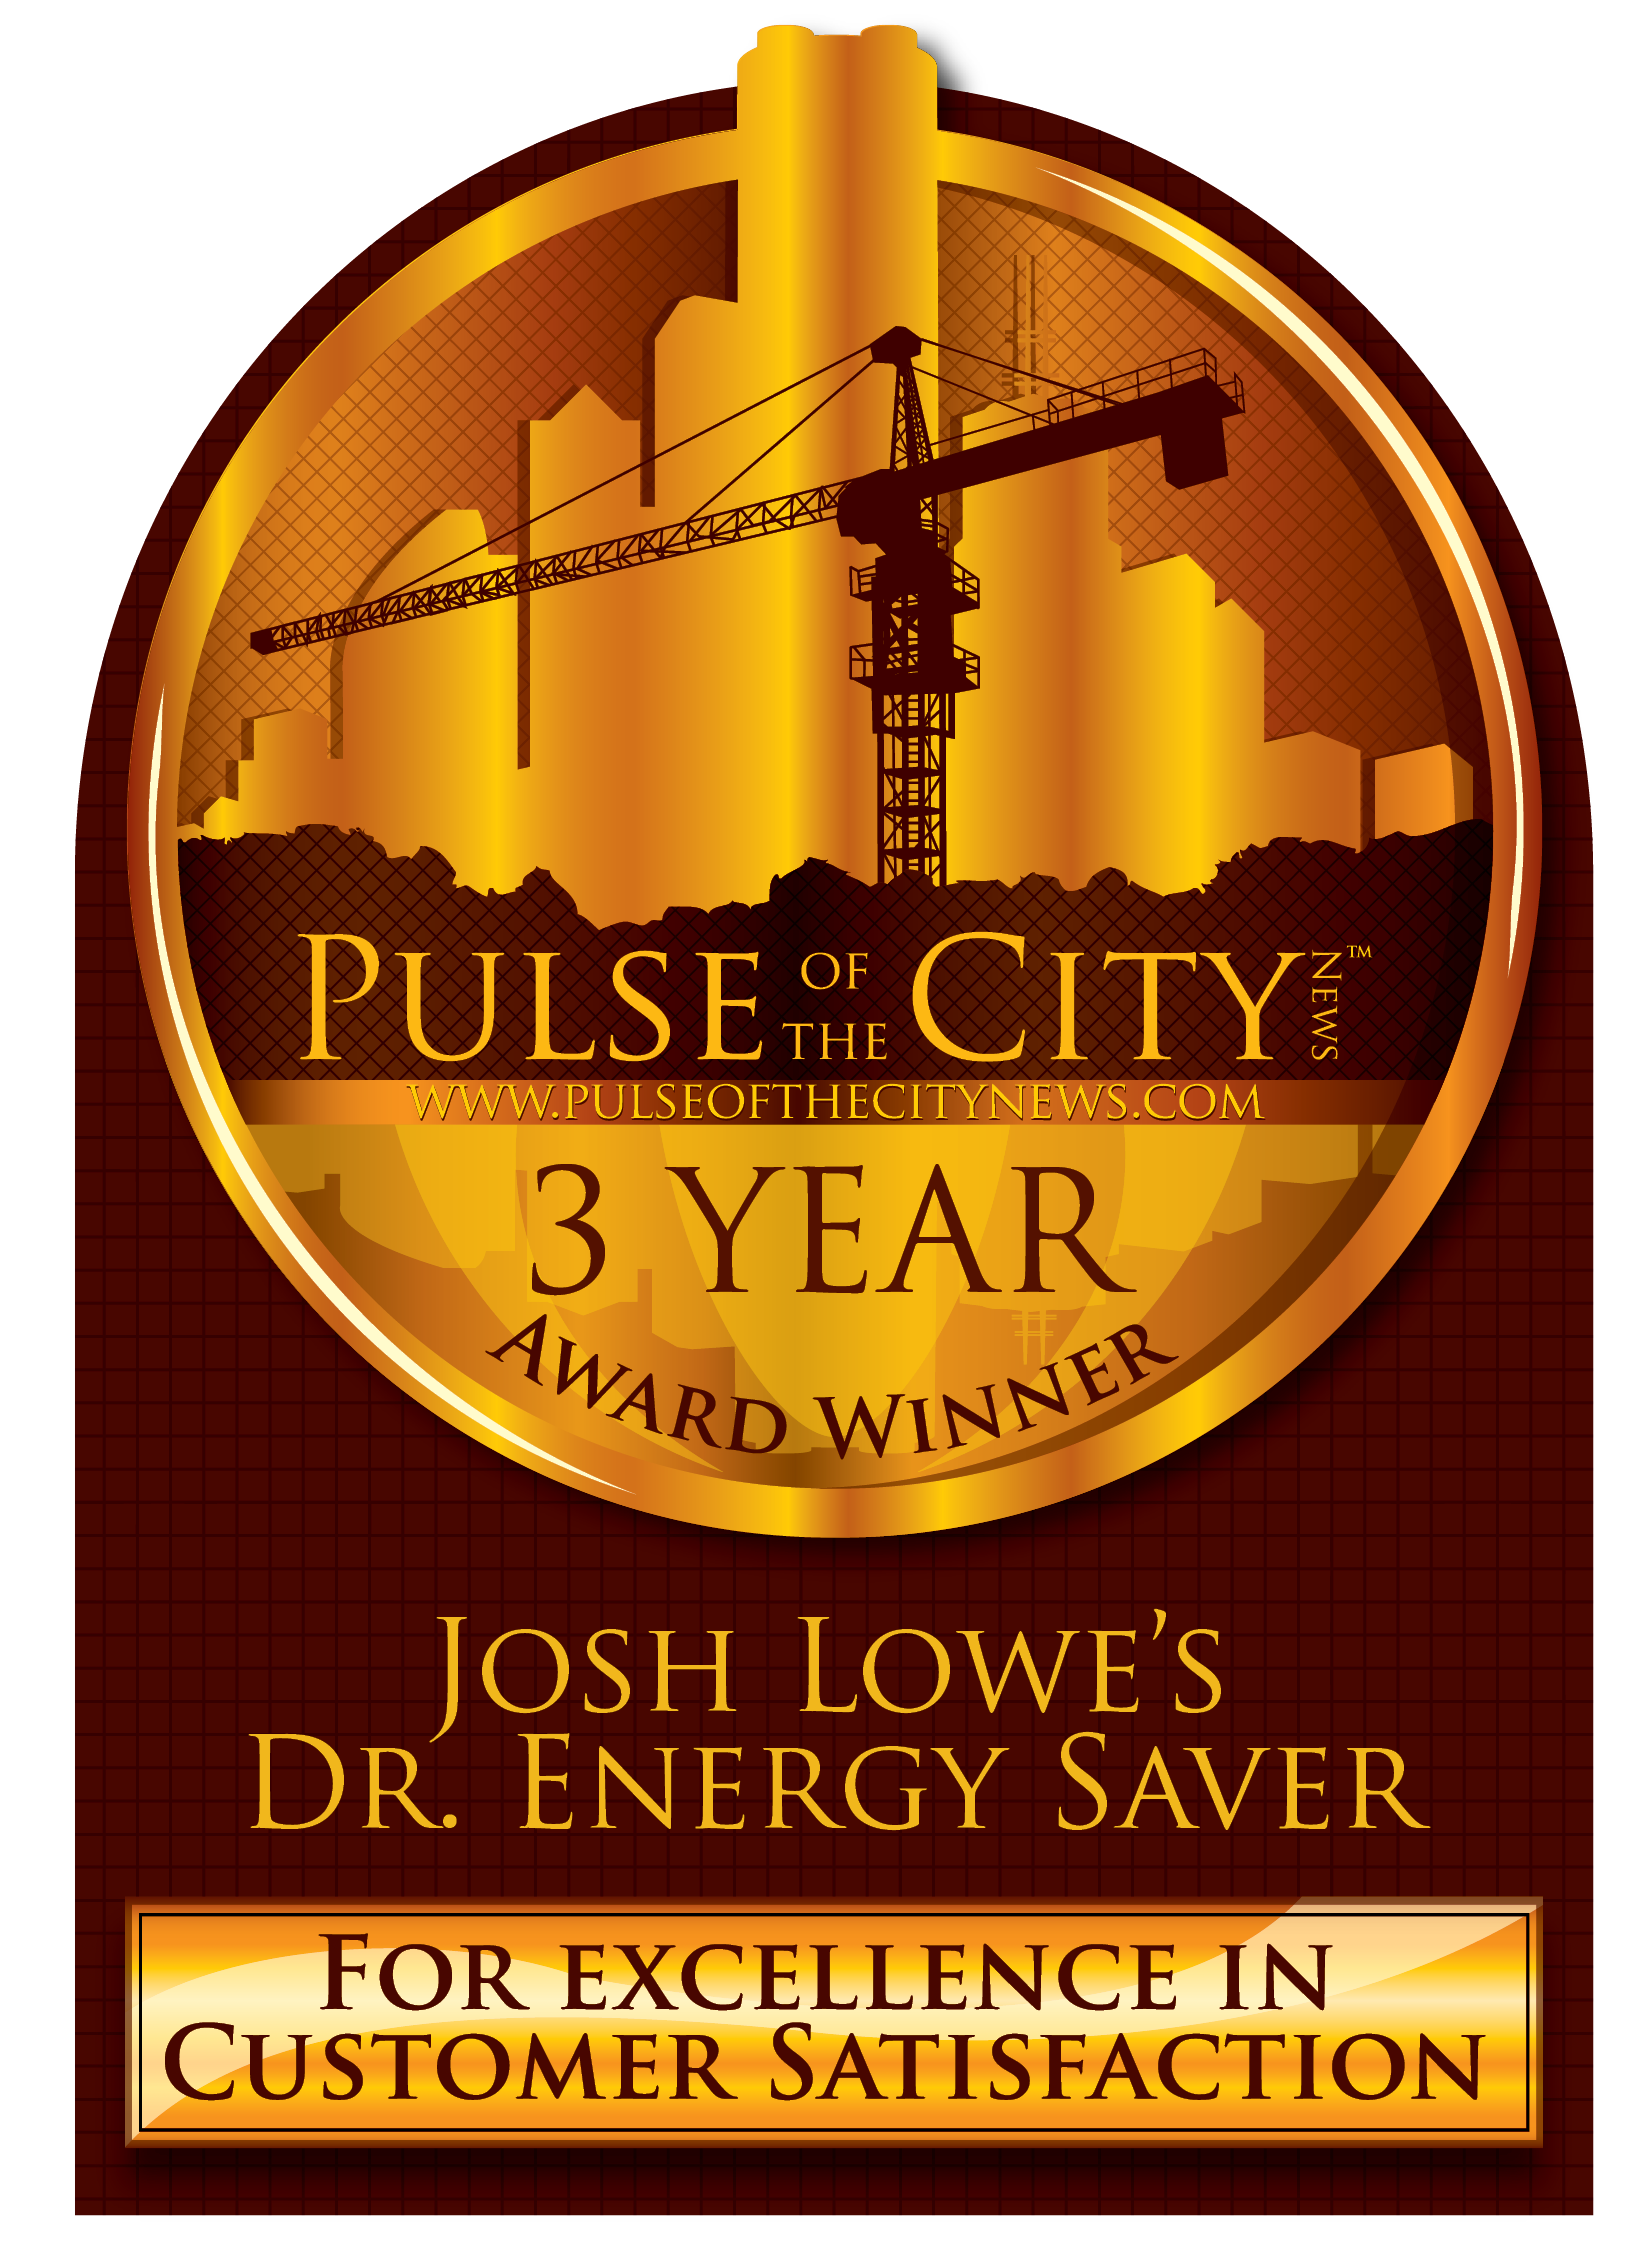 Pulse of the City Award Winner for 2015, 2016, and 2017